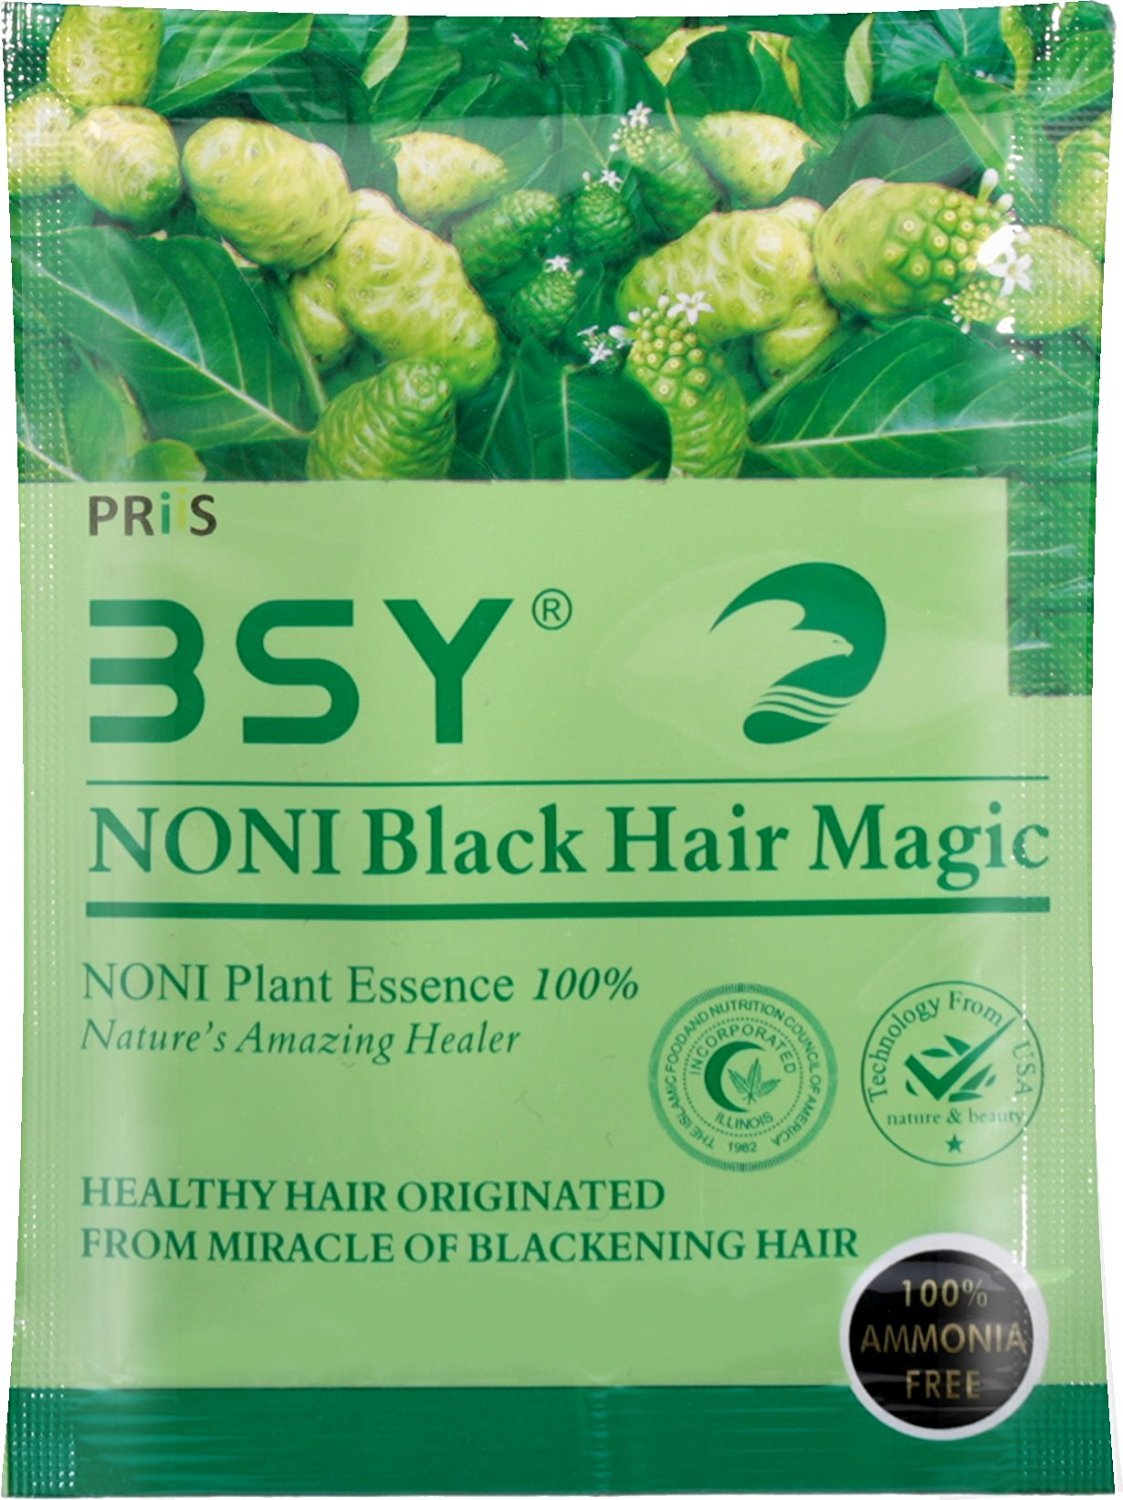 BSY NONI ORIGINAL Black Hair Magic - Hair Dye Shampoo (20x20ml Sachets) by BSY NONI (Image #3)